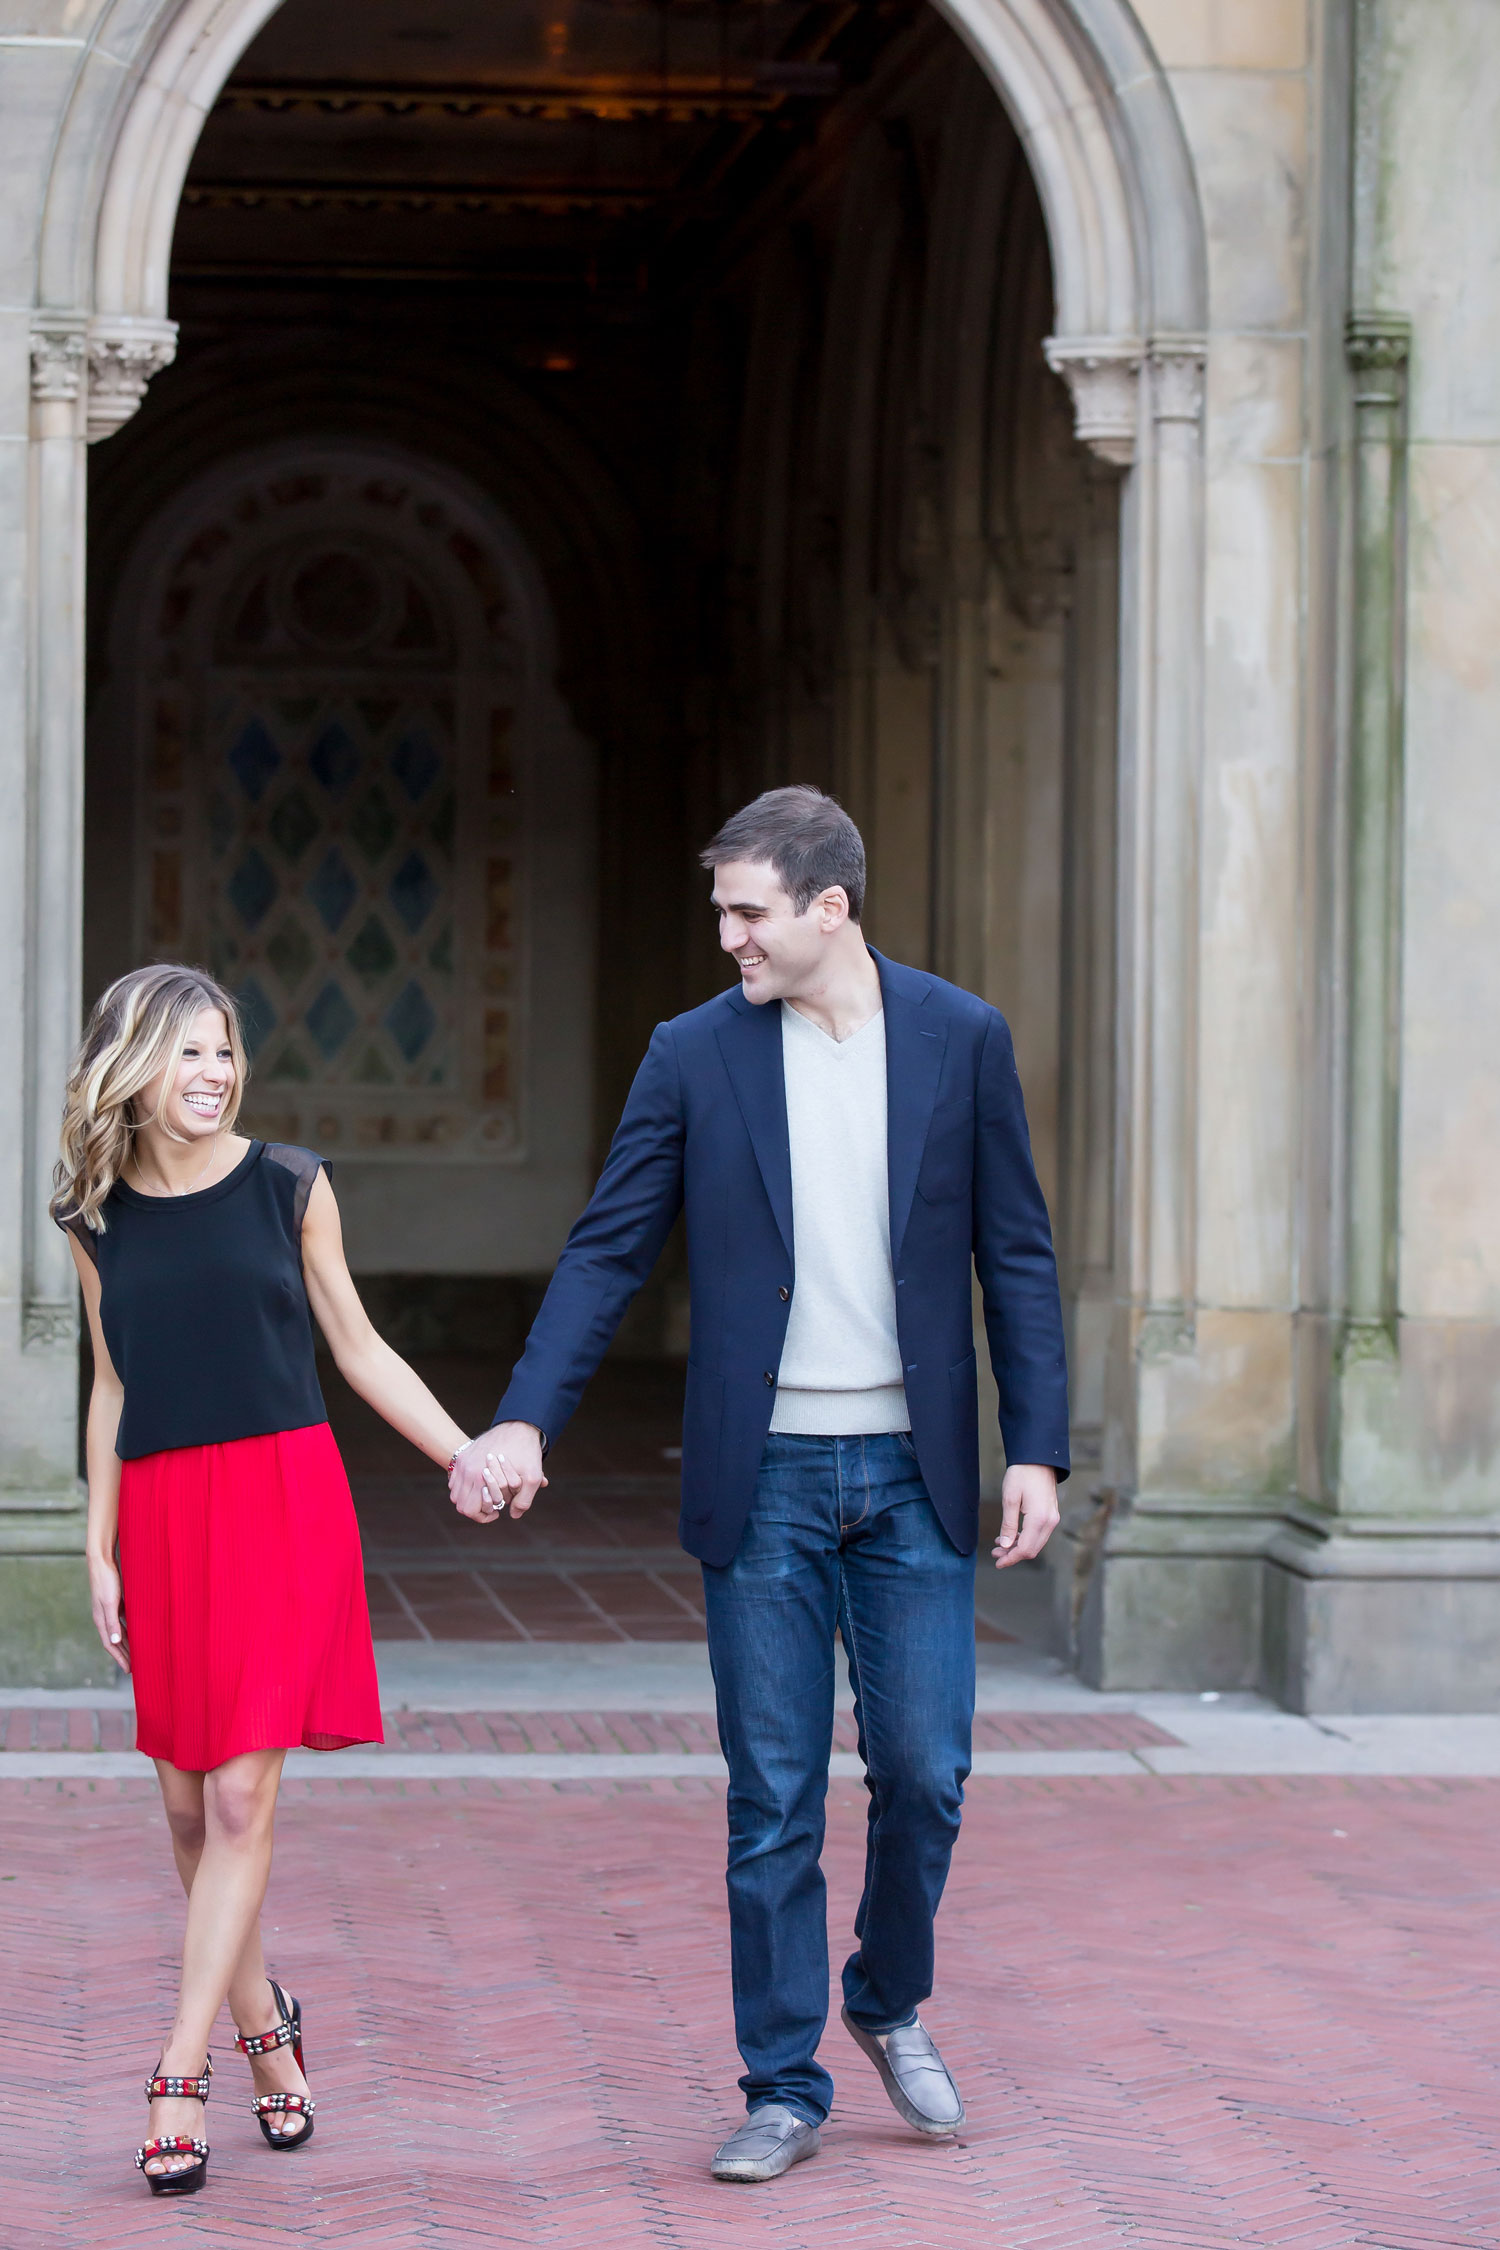 Engagement shoot ideas bride in skirt red and black new york city engagement shoot central park ideas